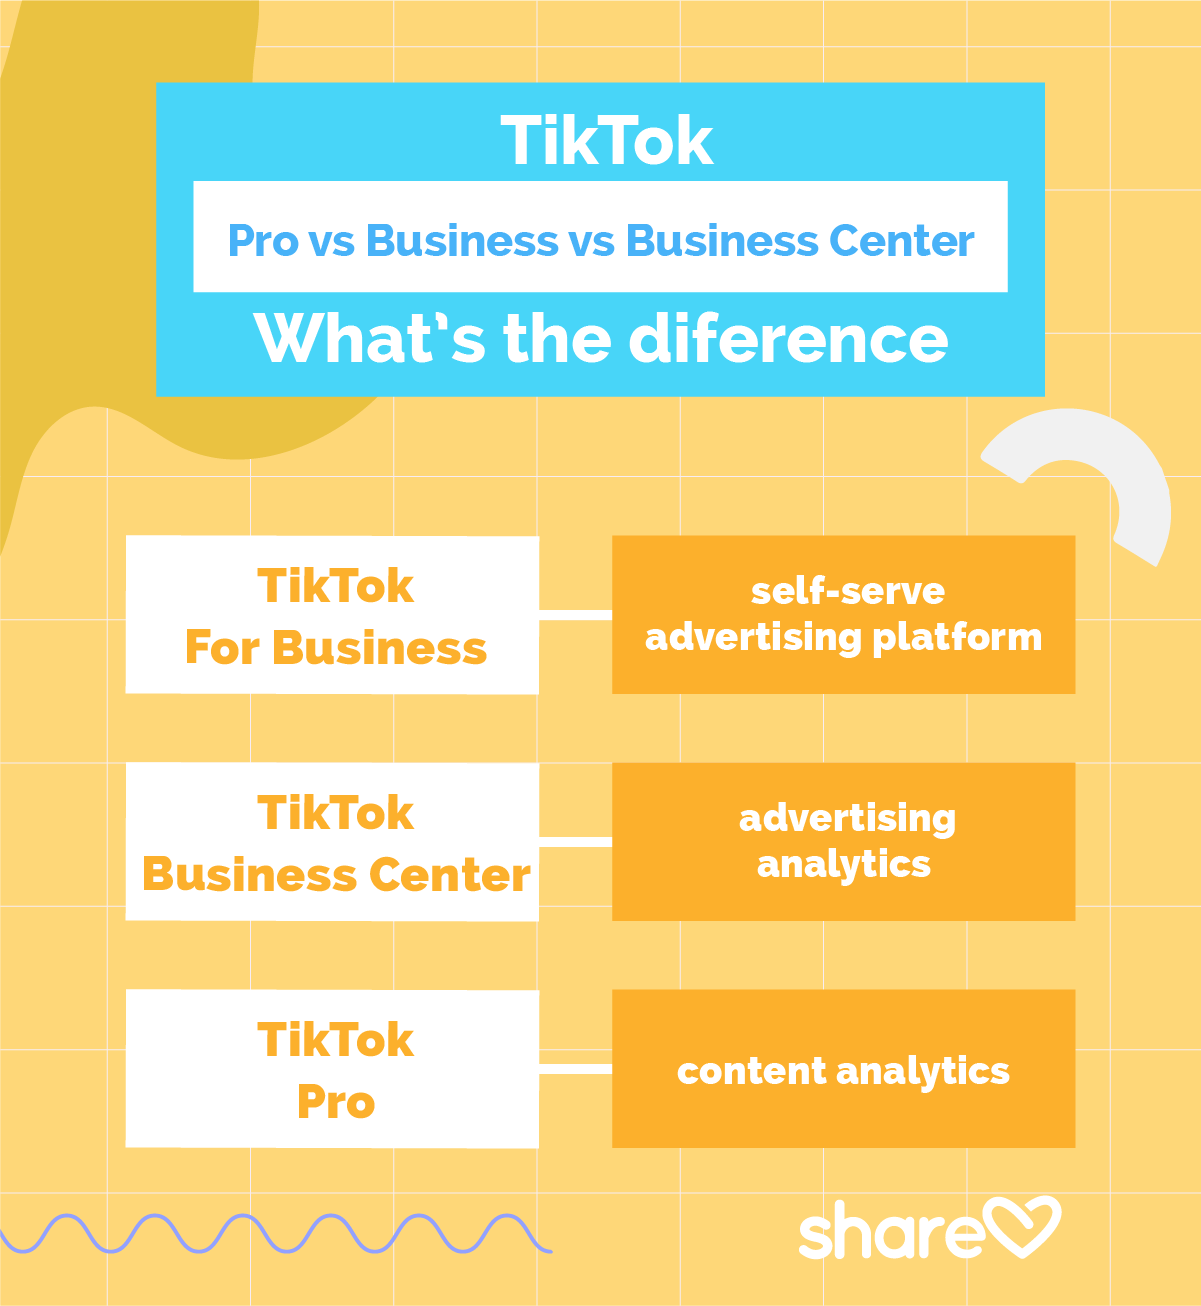 TikTok Pro vs.TikTok For Business